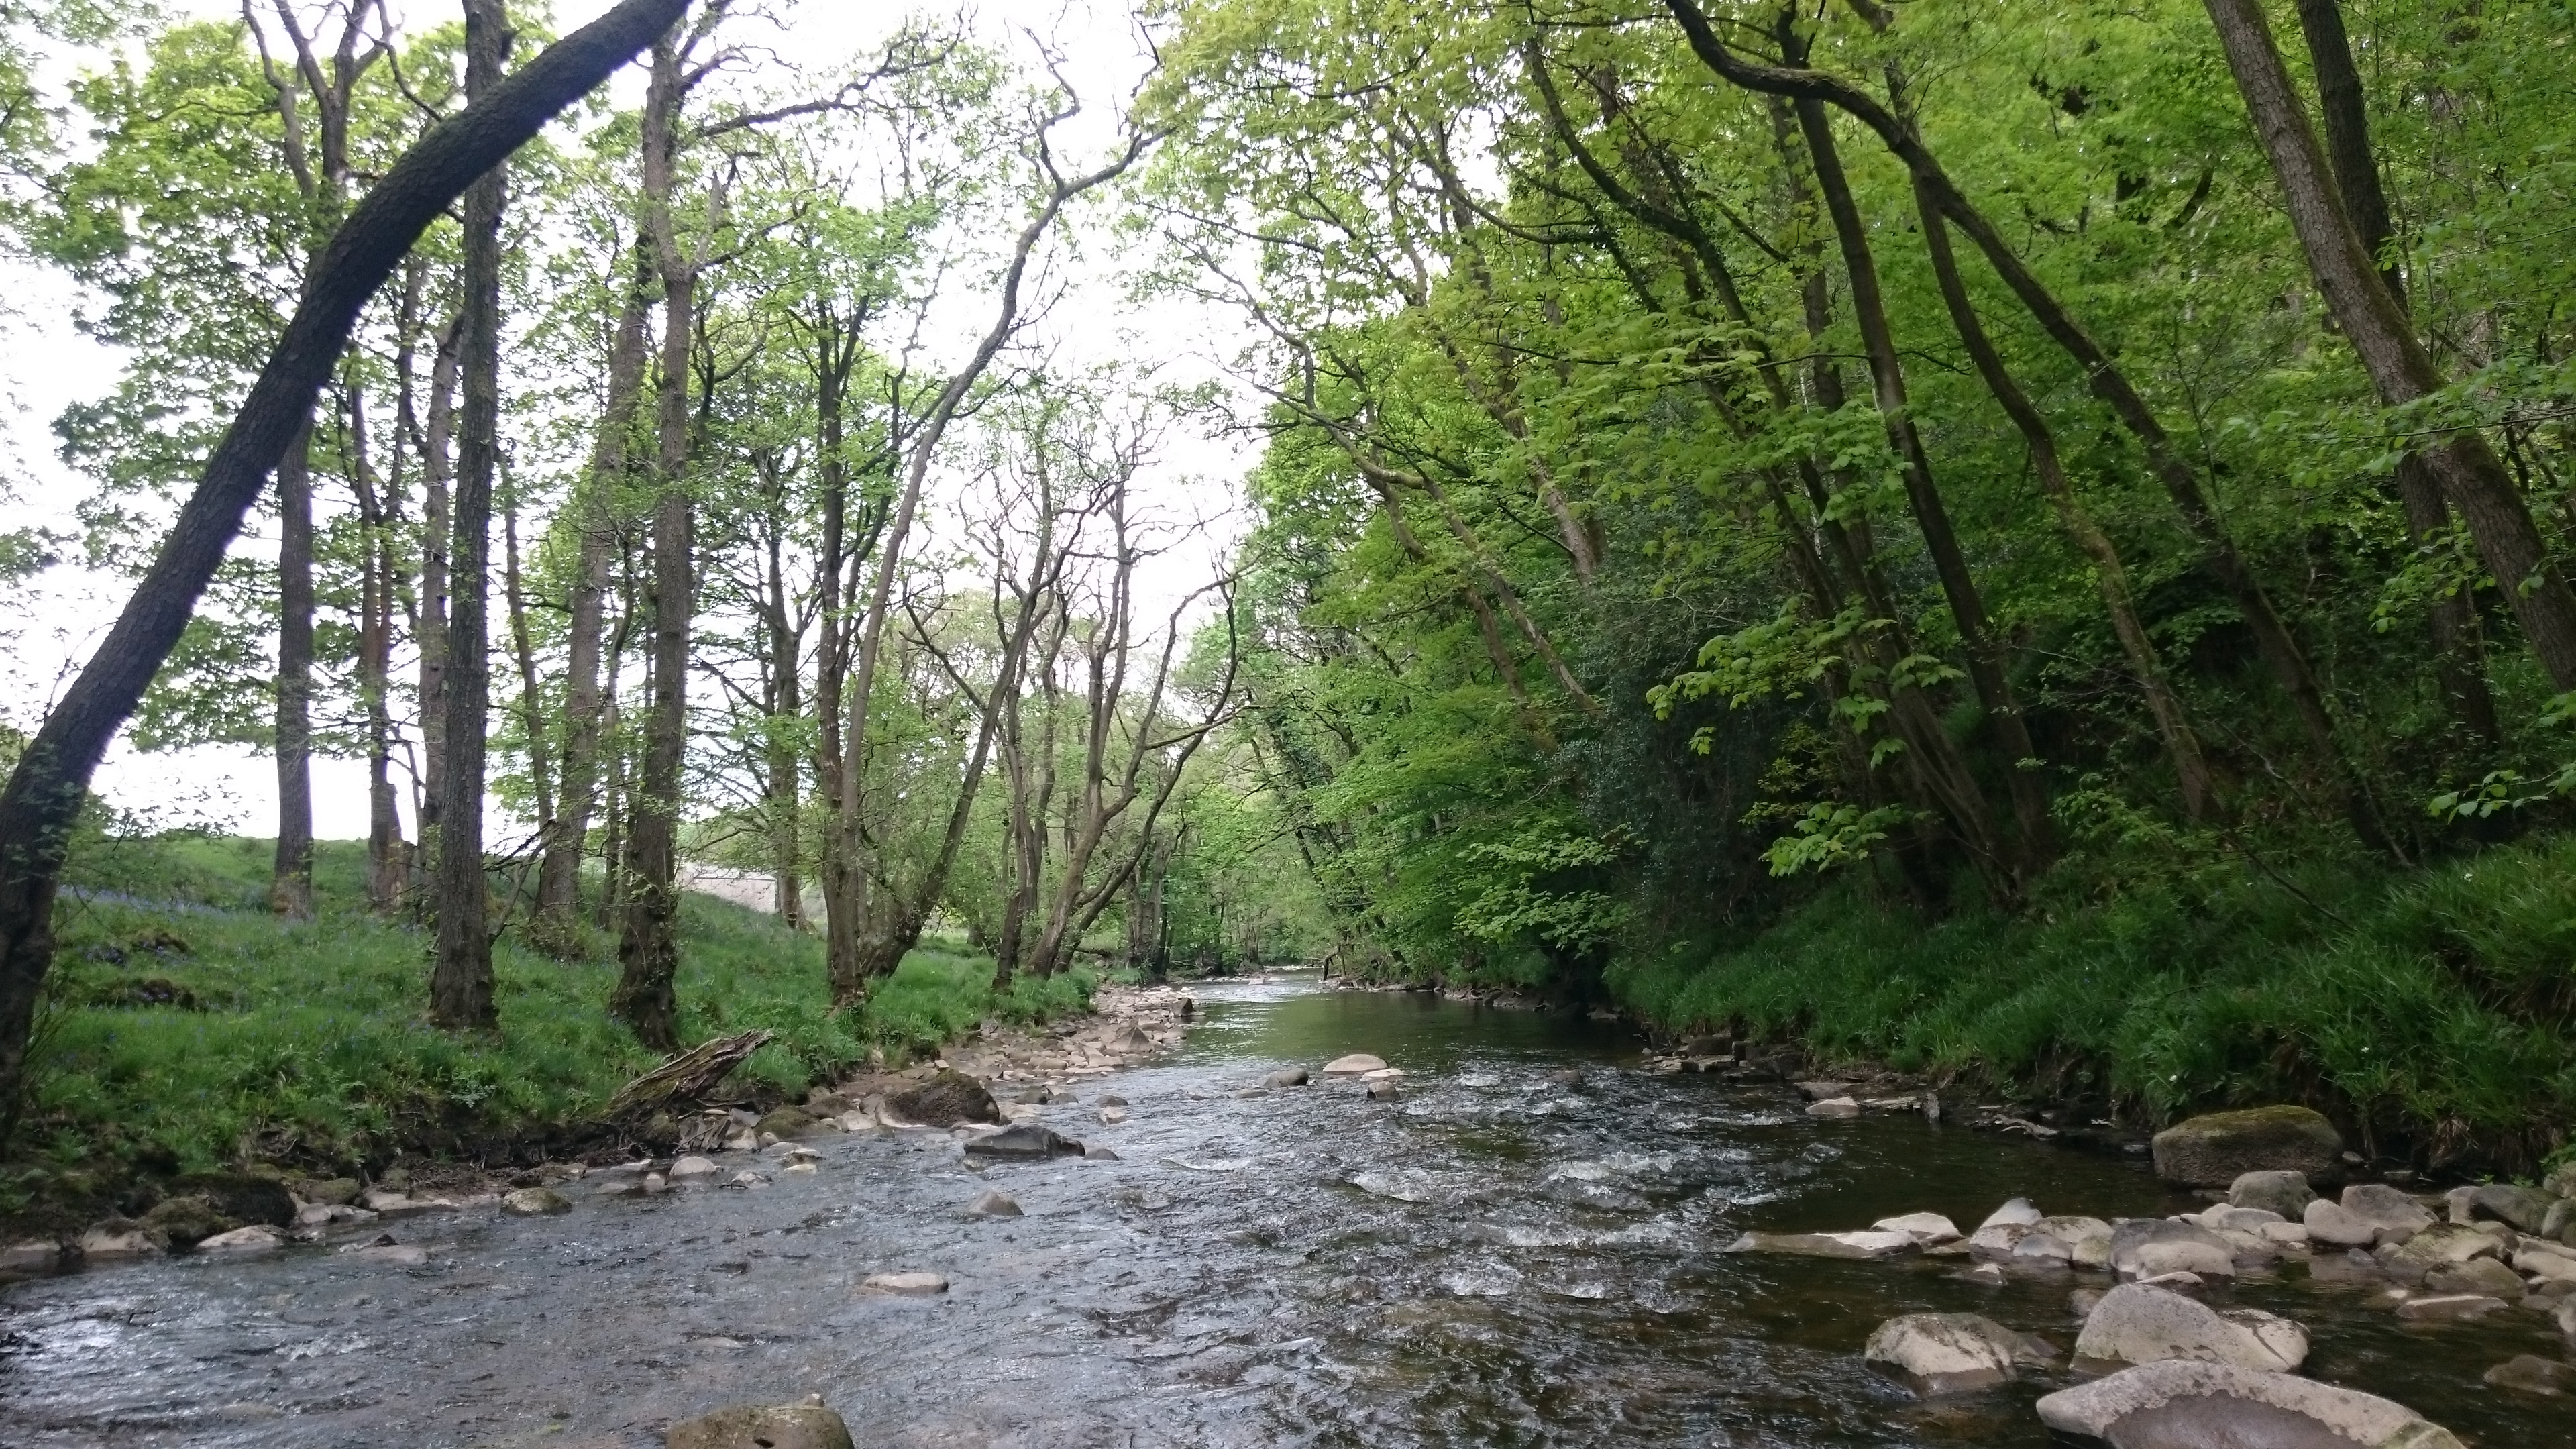 'Woodlands for Water' initiative announced by Defra